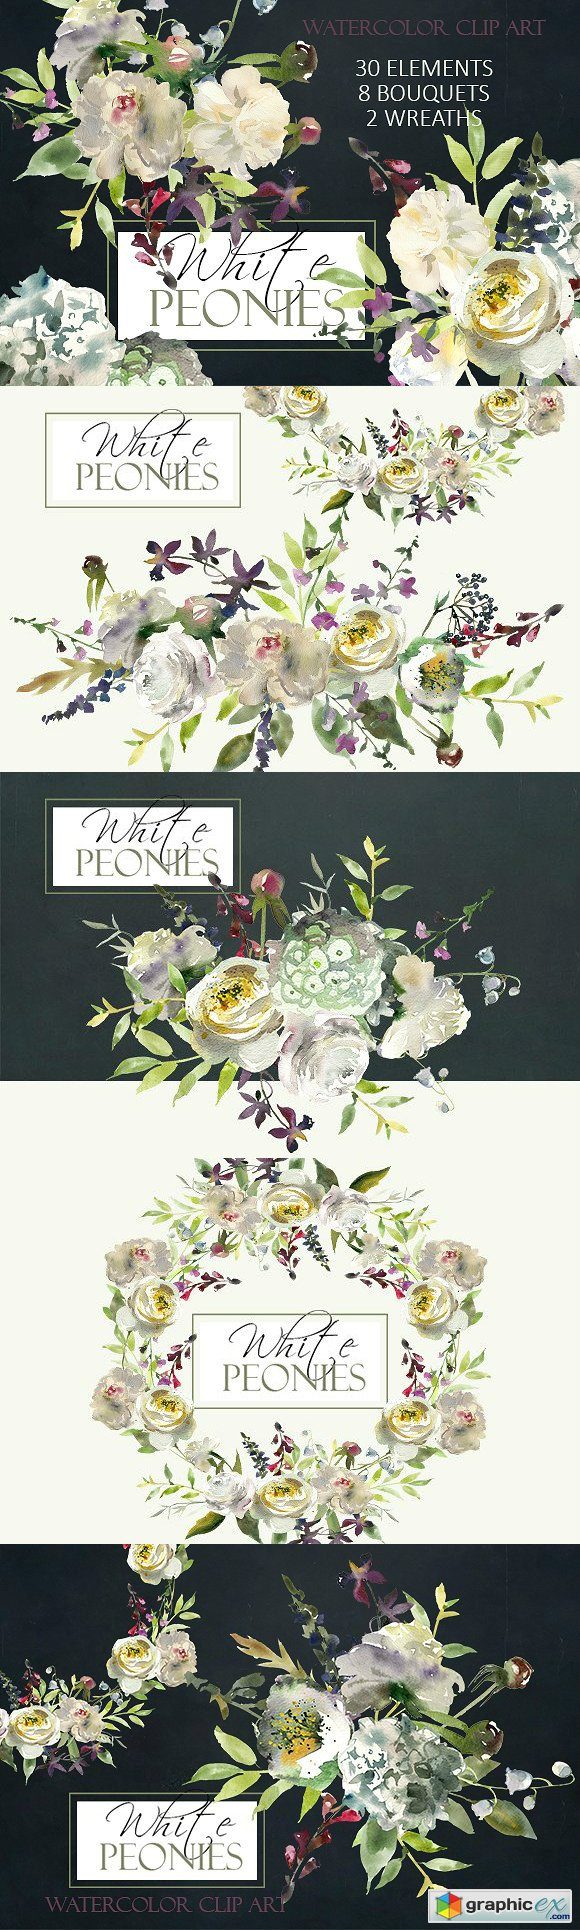 Watercolor White Flowers Clipart